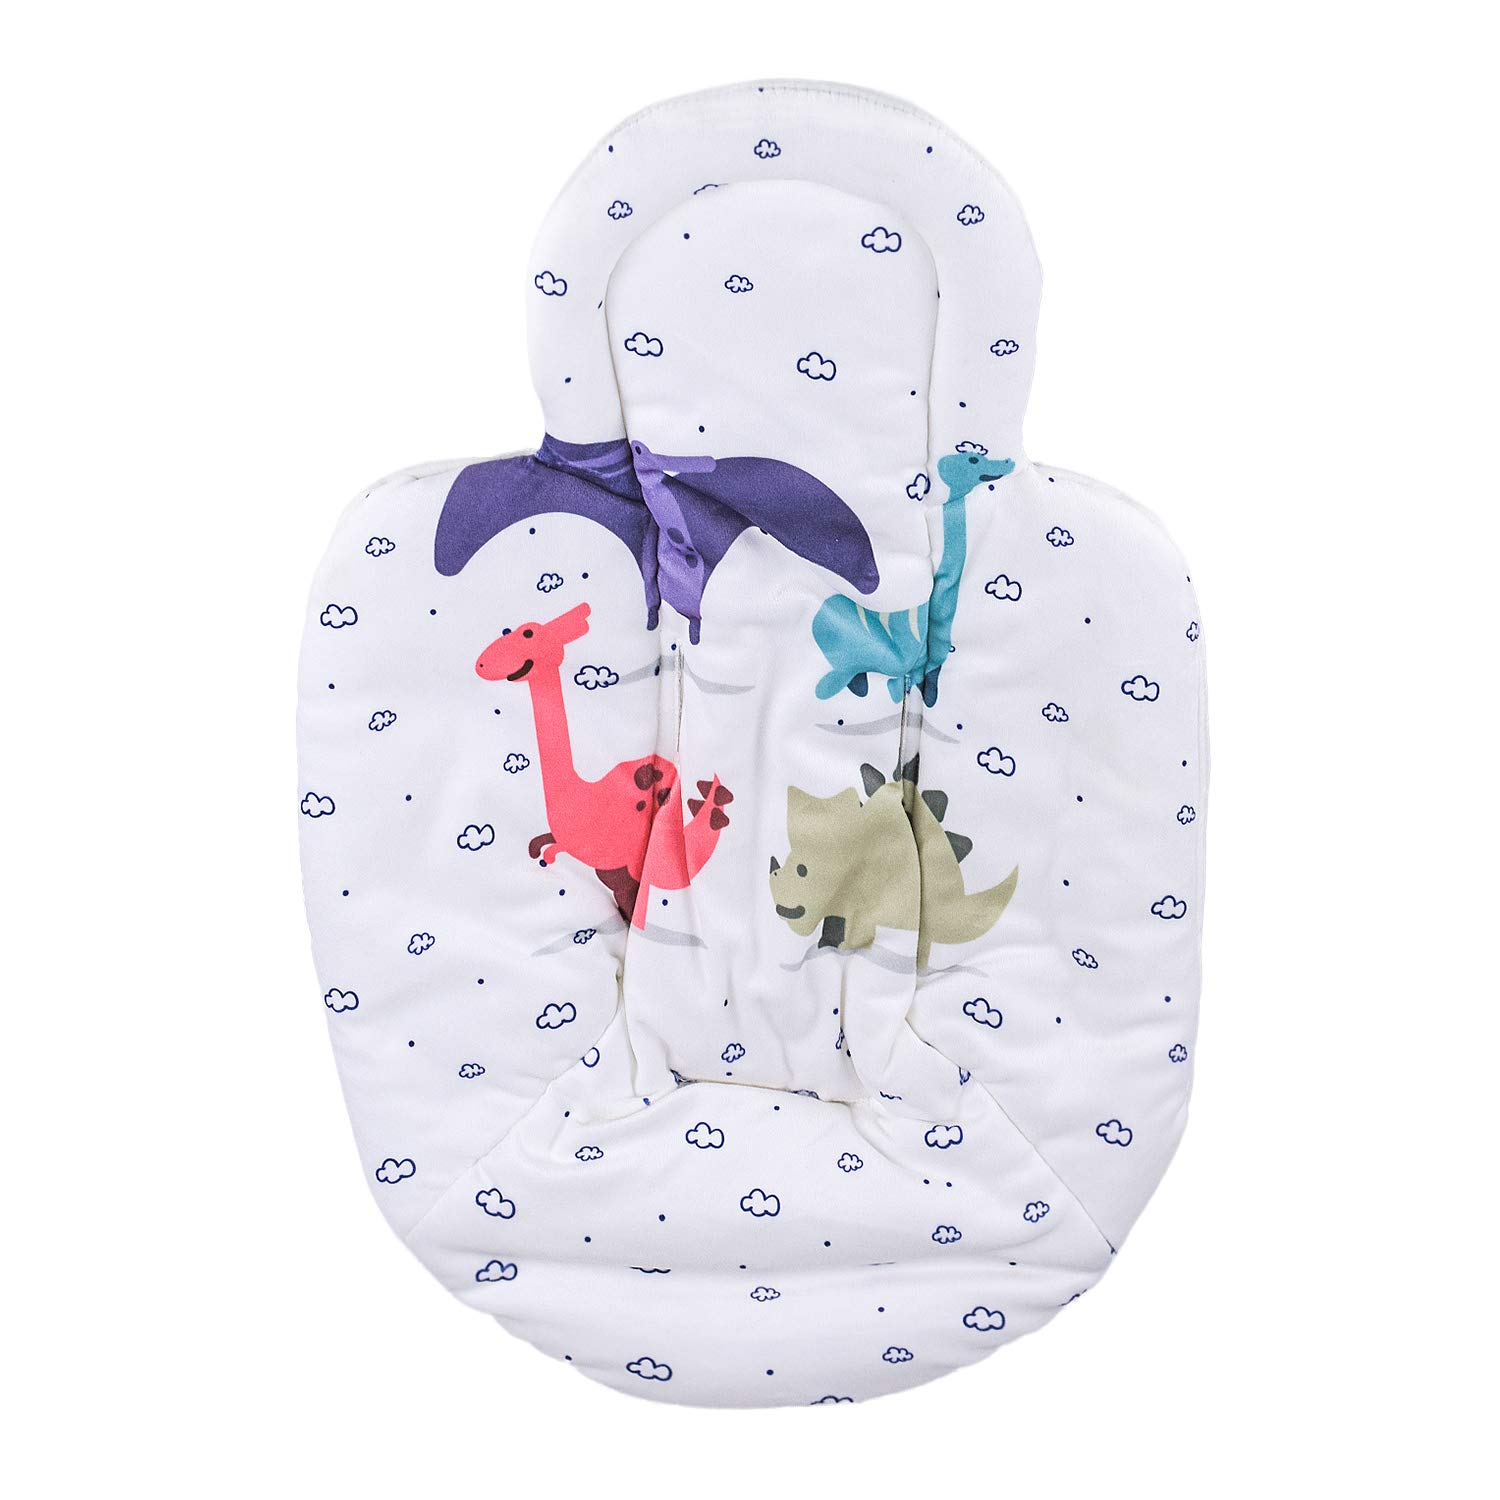 Topwon Newborn Infant Support Cushion Liner Body Support Pillow for Baby Swing/Bassinet (Dinosaur)